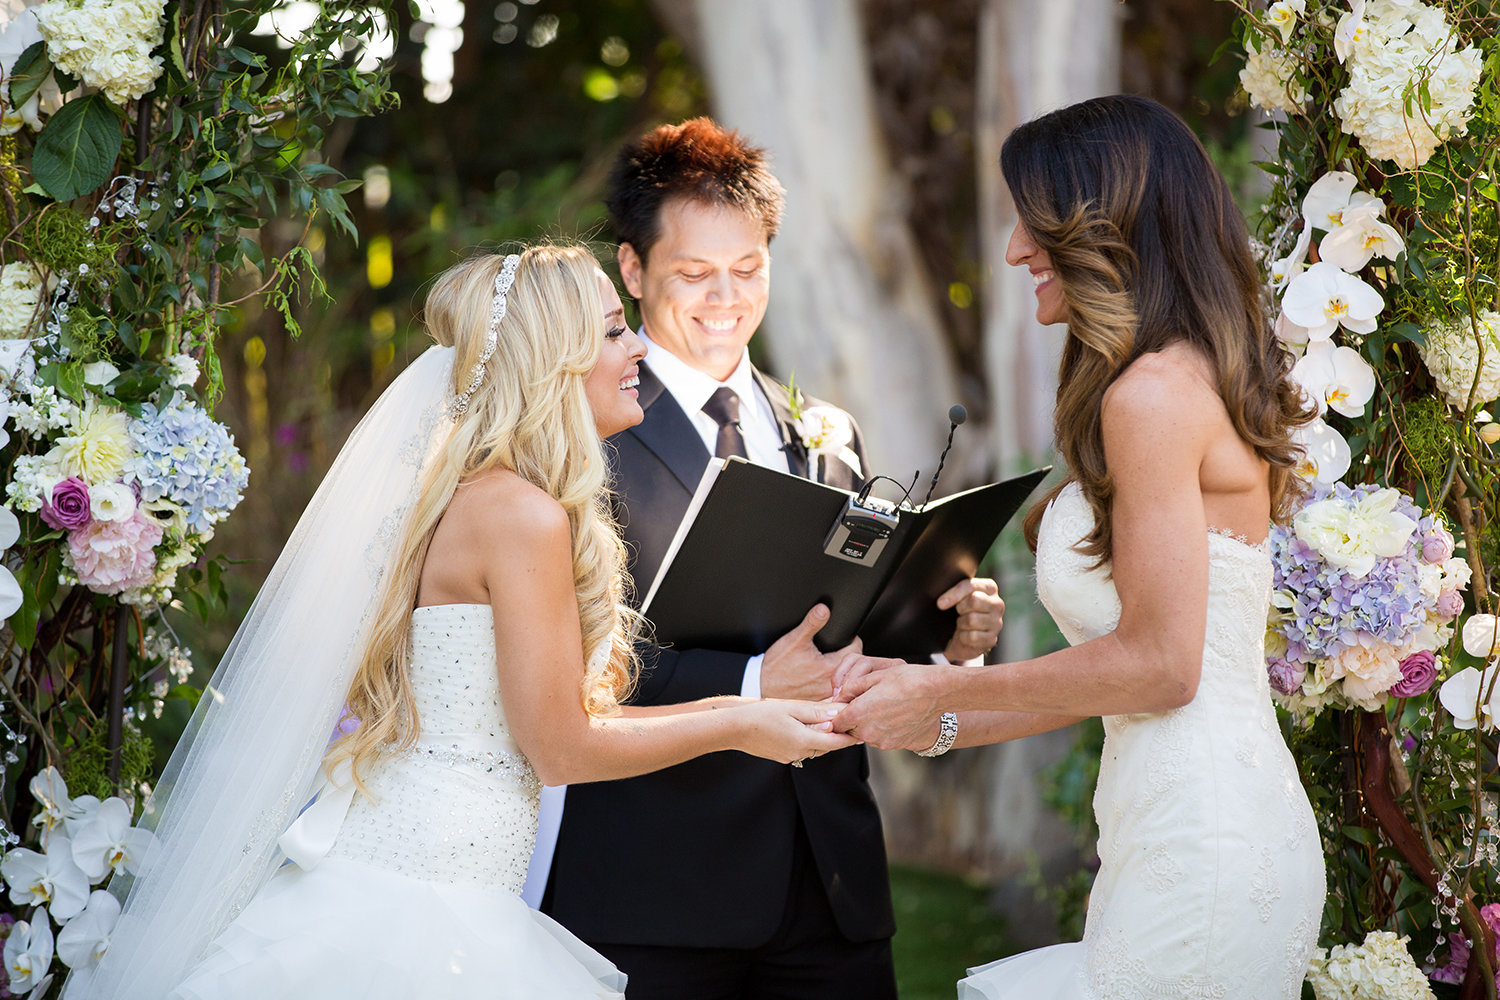 Two brides say their vows at a colorful wedding ceremony